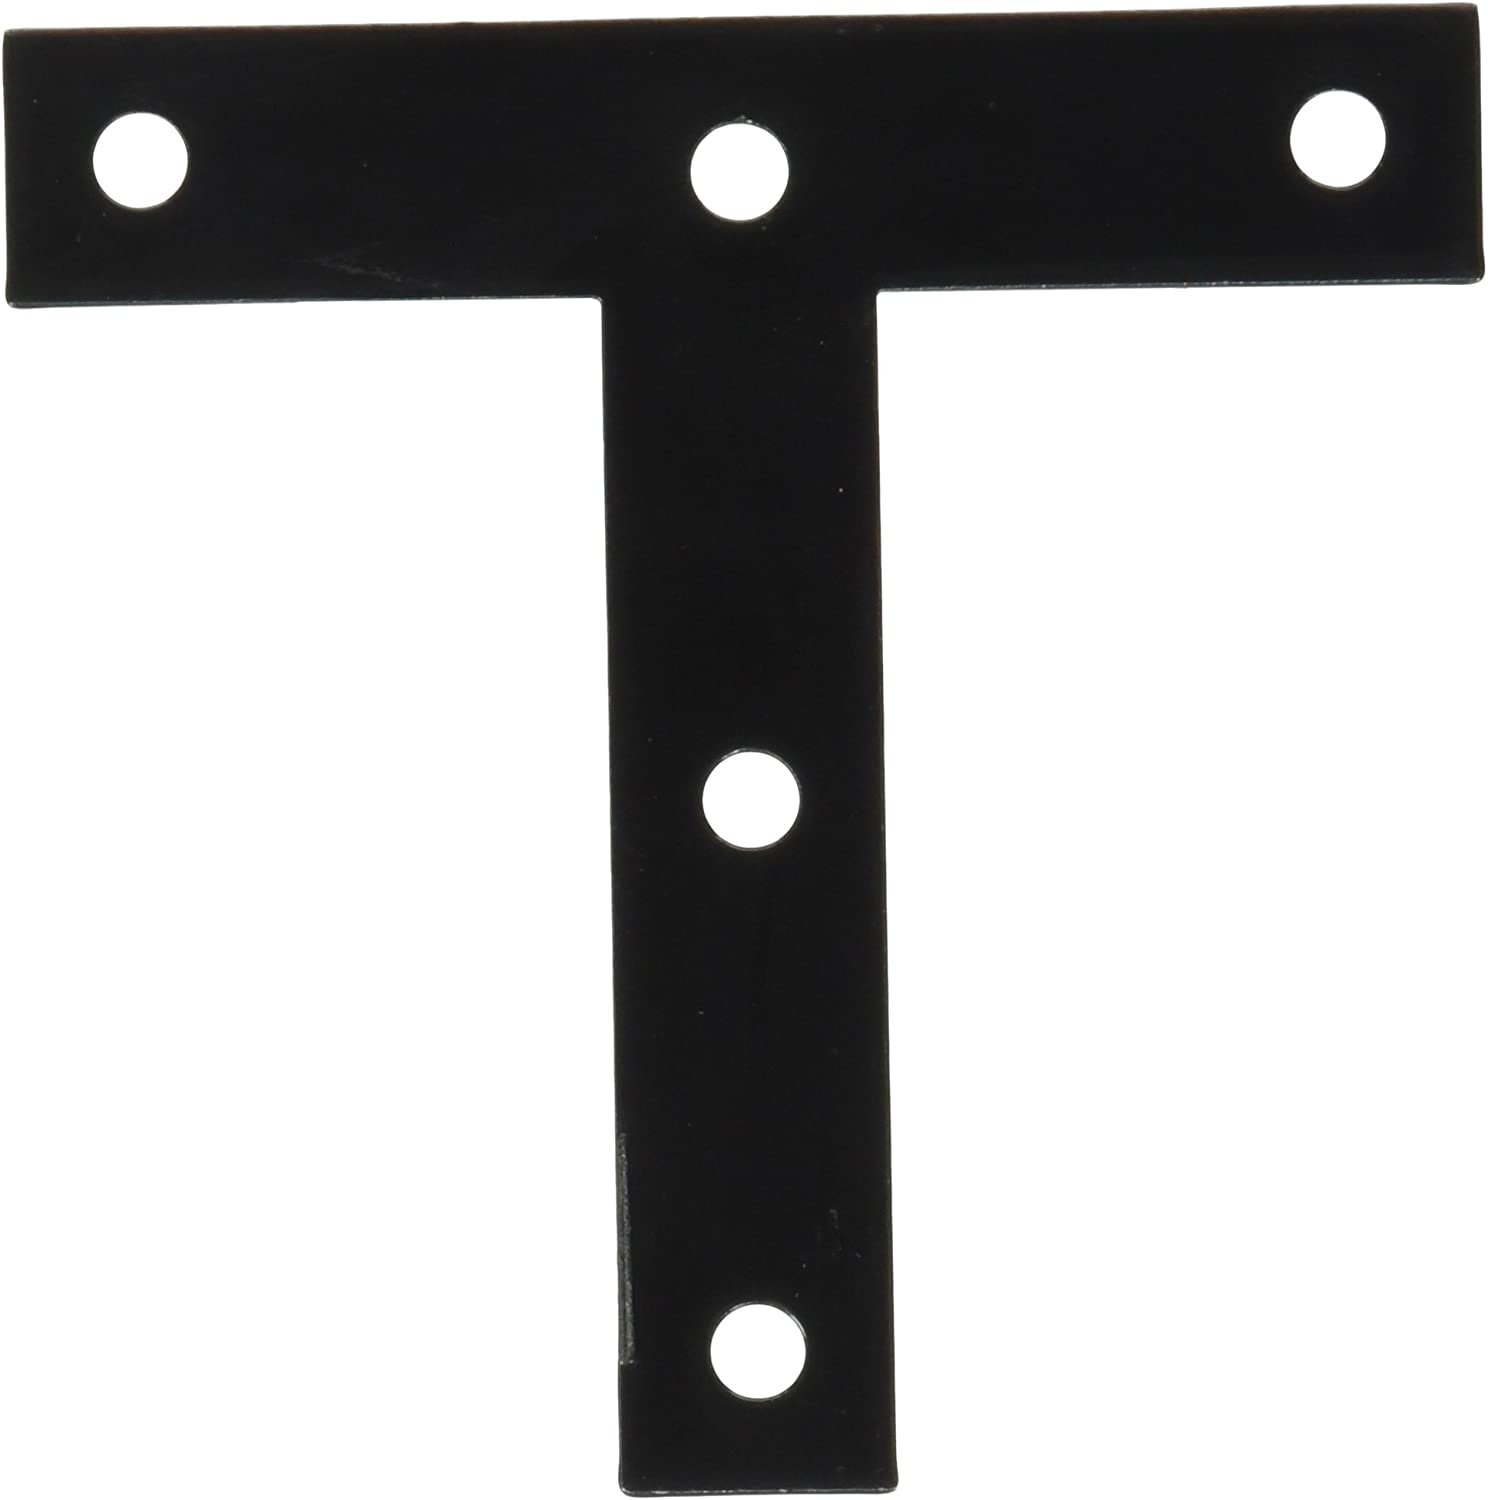 National Hardware N266-470 116BC T Plates in Black finish,4